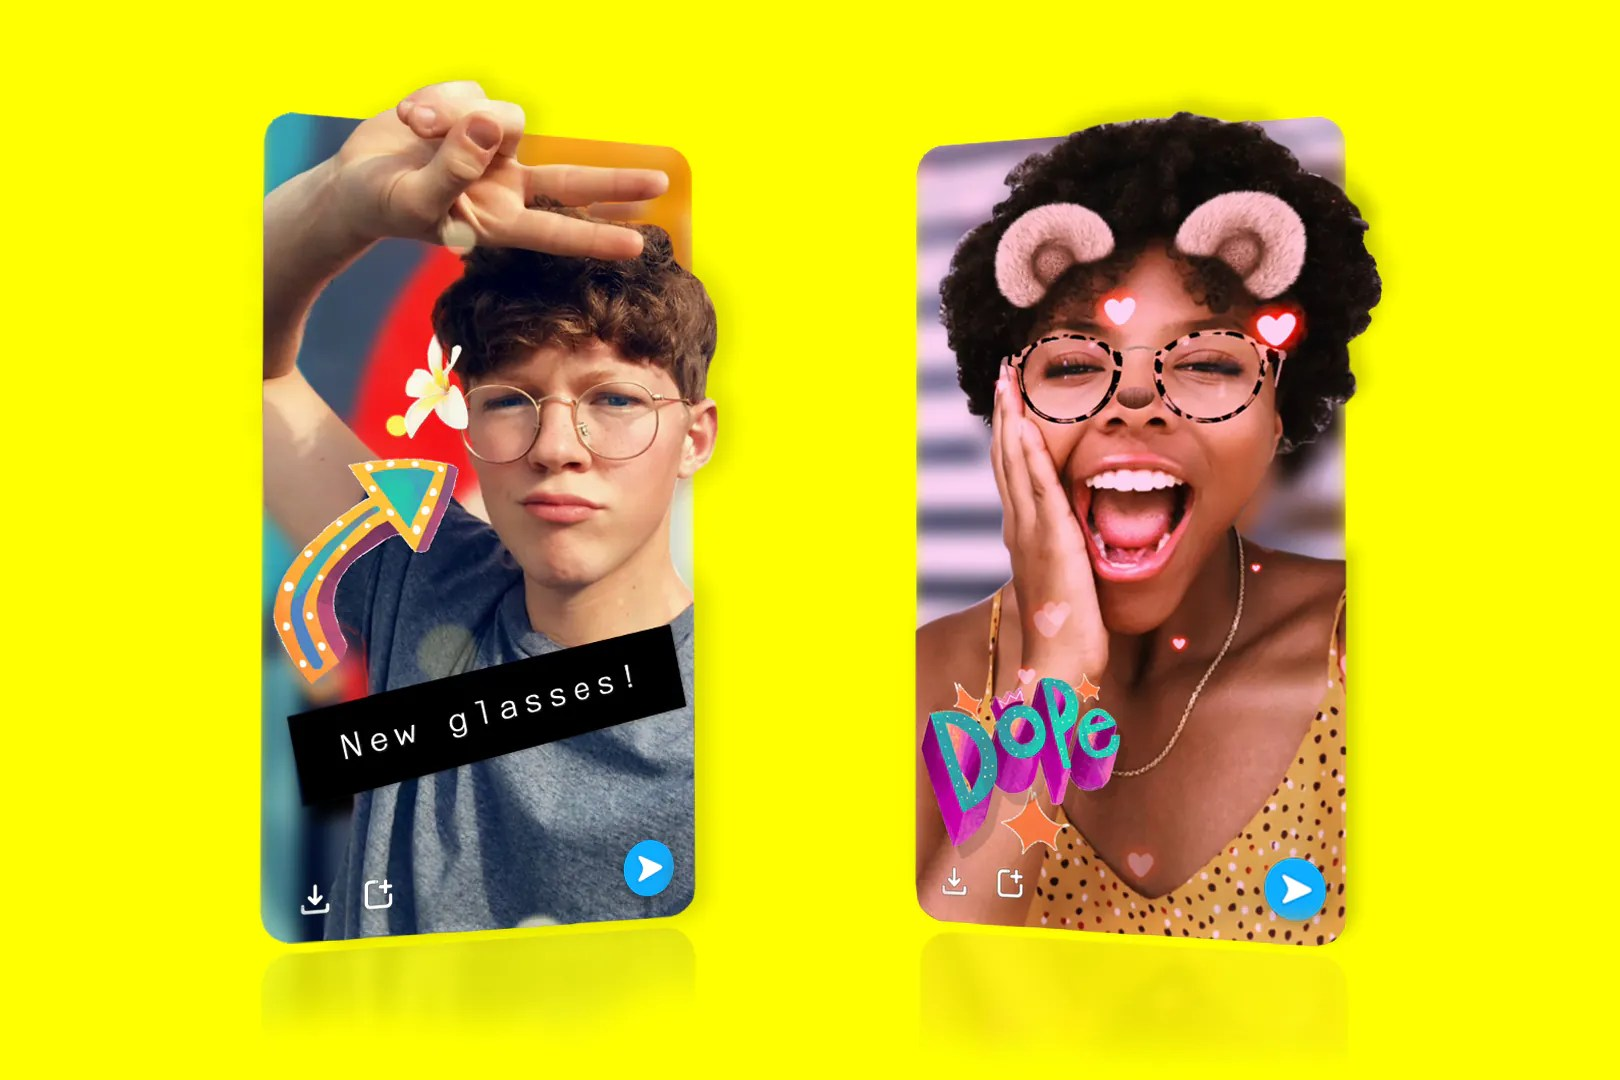 Snapchat brings 3D camera mode for selfies